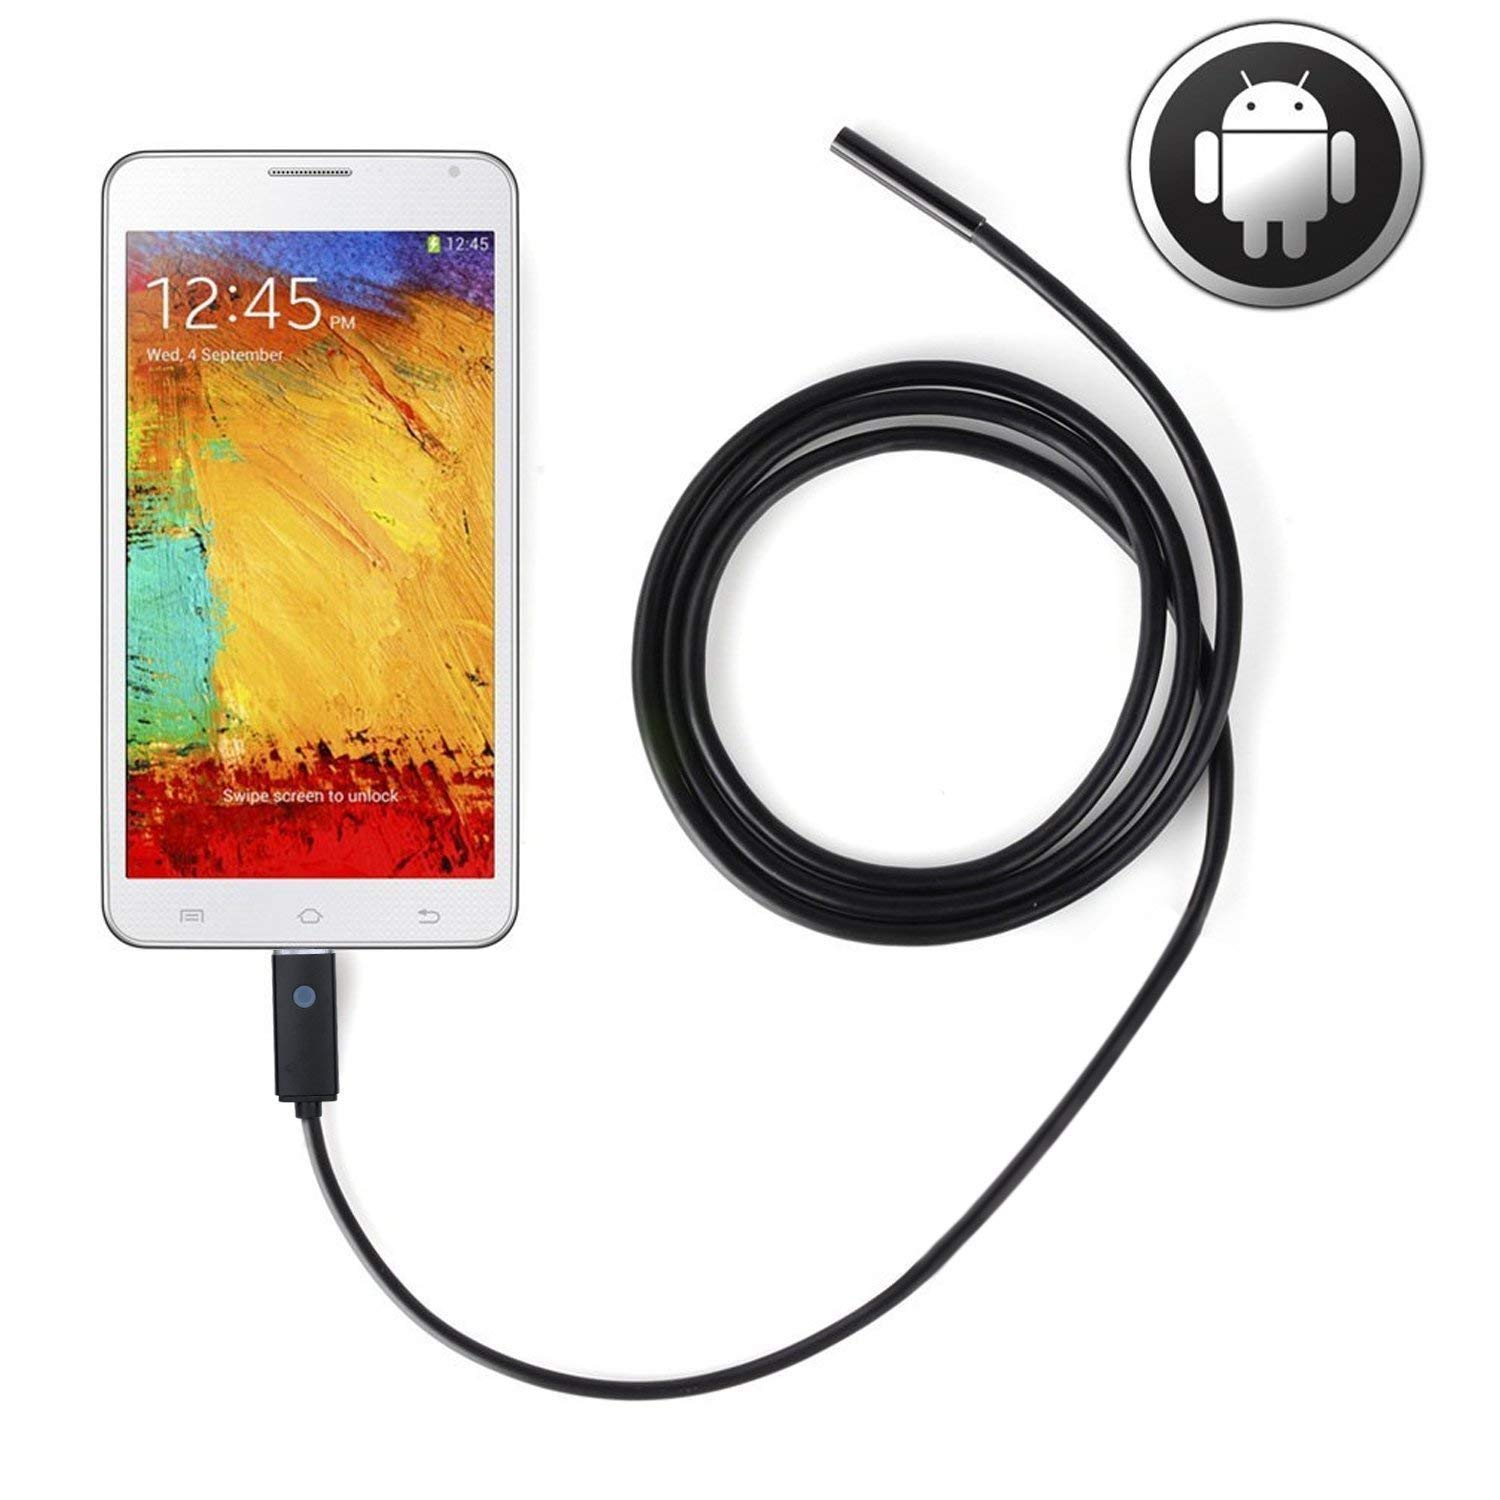 AN99 USB Endoscope 2 in 1 Semi-rigid Borescope Inspection Camera 2.0 Megapixels CMOS HD Waterproof Snake Camera with 6 Adjustable Led Light (10M cable)(7mm) Jefs